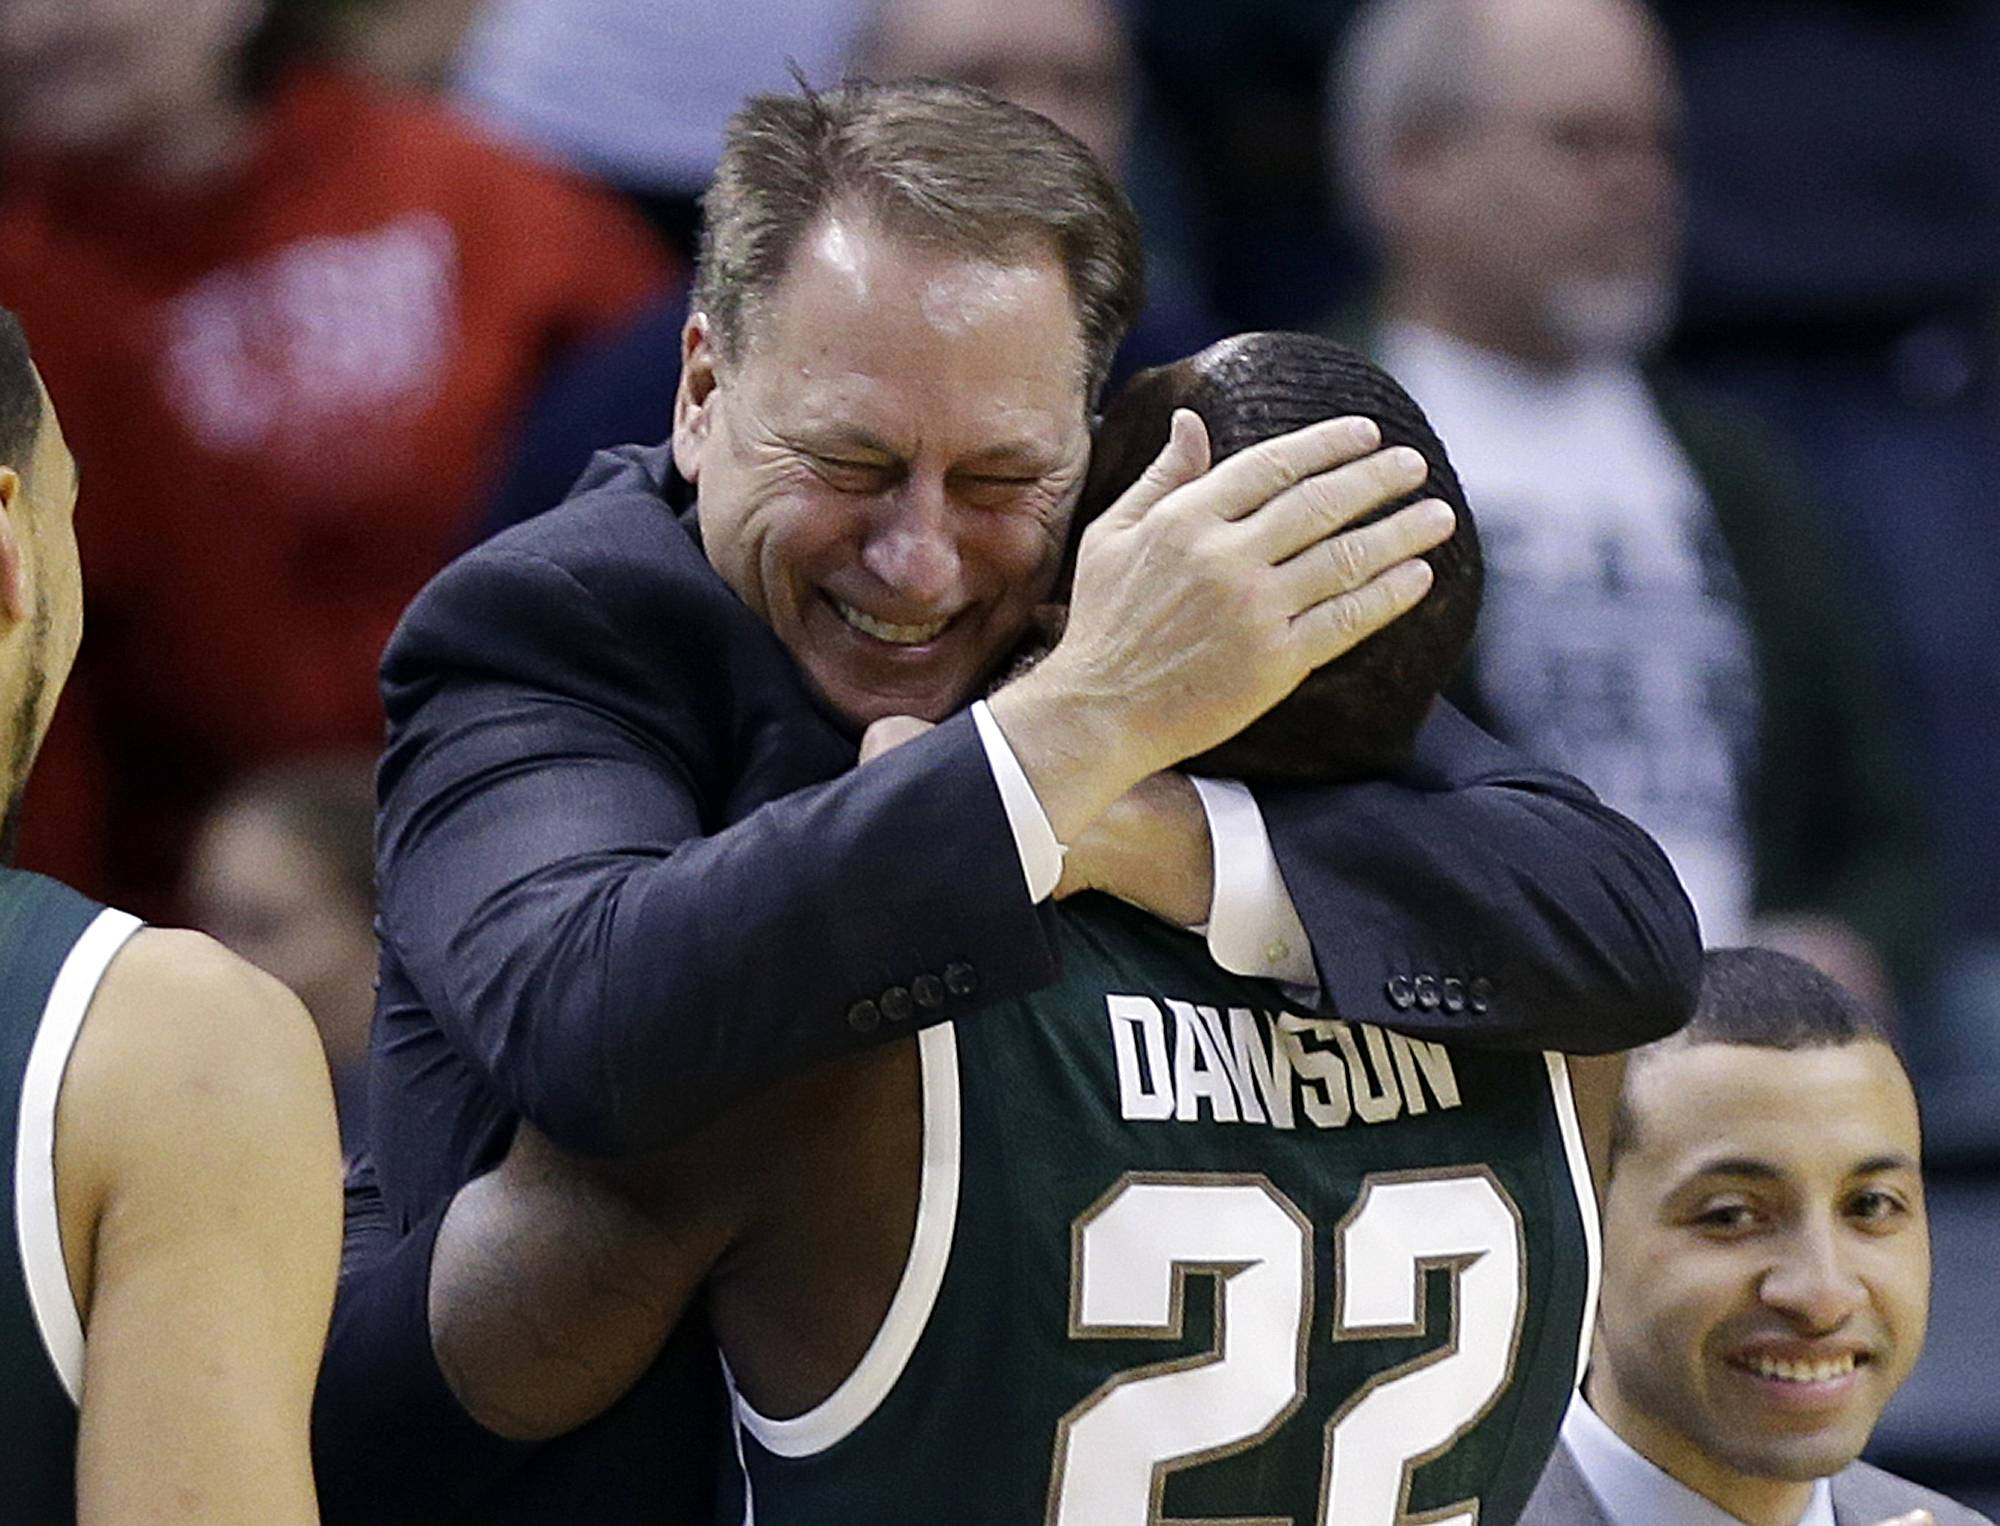 Michigan State guard/forward Branden Dawson (22) hugs head coach Tom Izzo as he walks to the bench in the second half of an NCAA college basketball game against Michigan in the championship of the Big Ten Conference tournament on Sunday, March 16, 2014, in Indianapolis. Michigan State won 69-55.